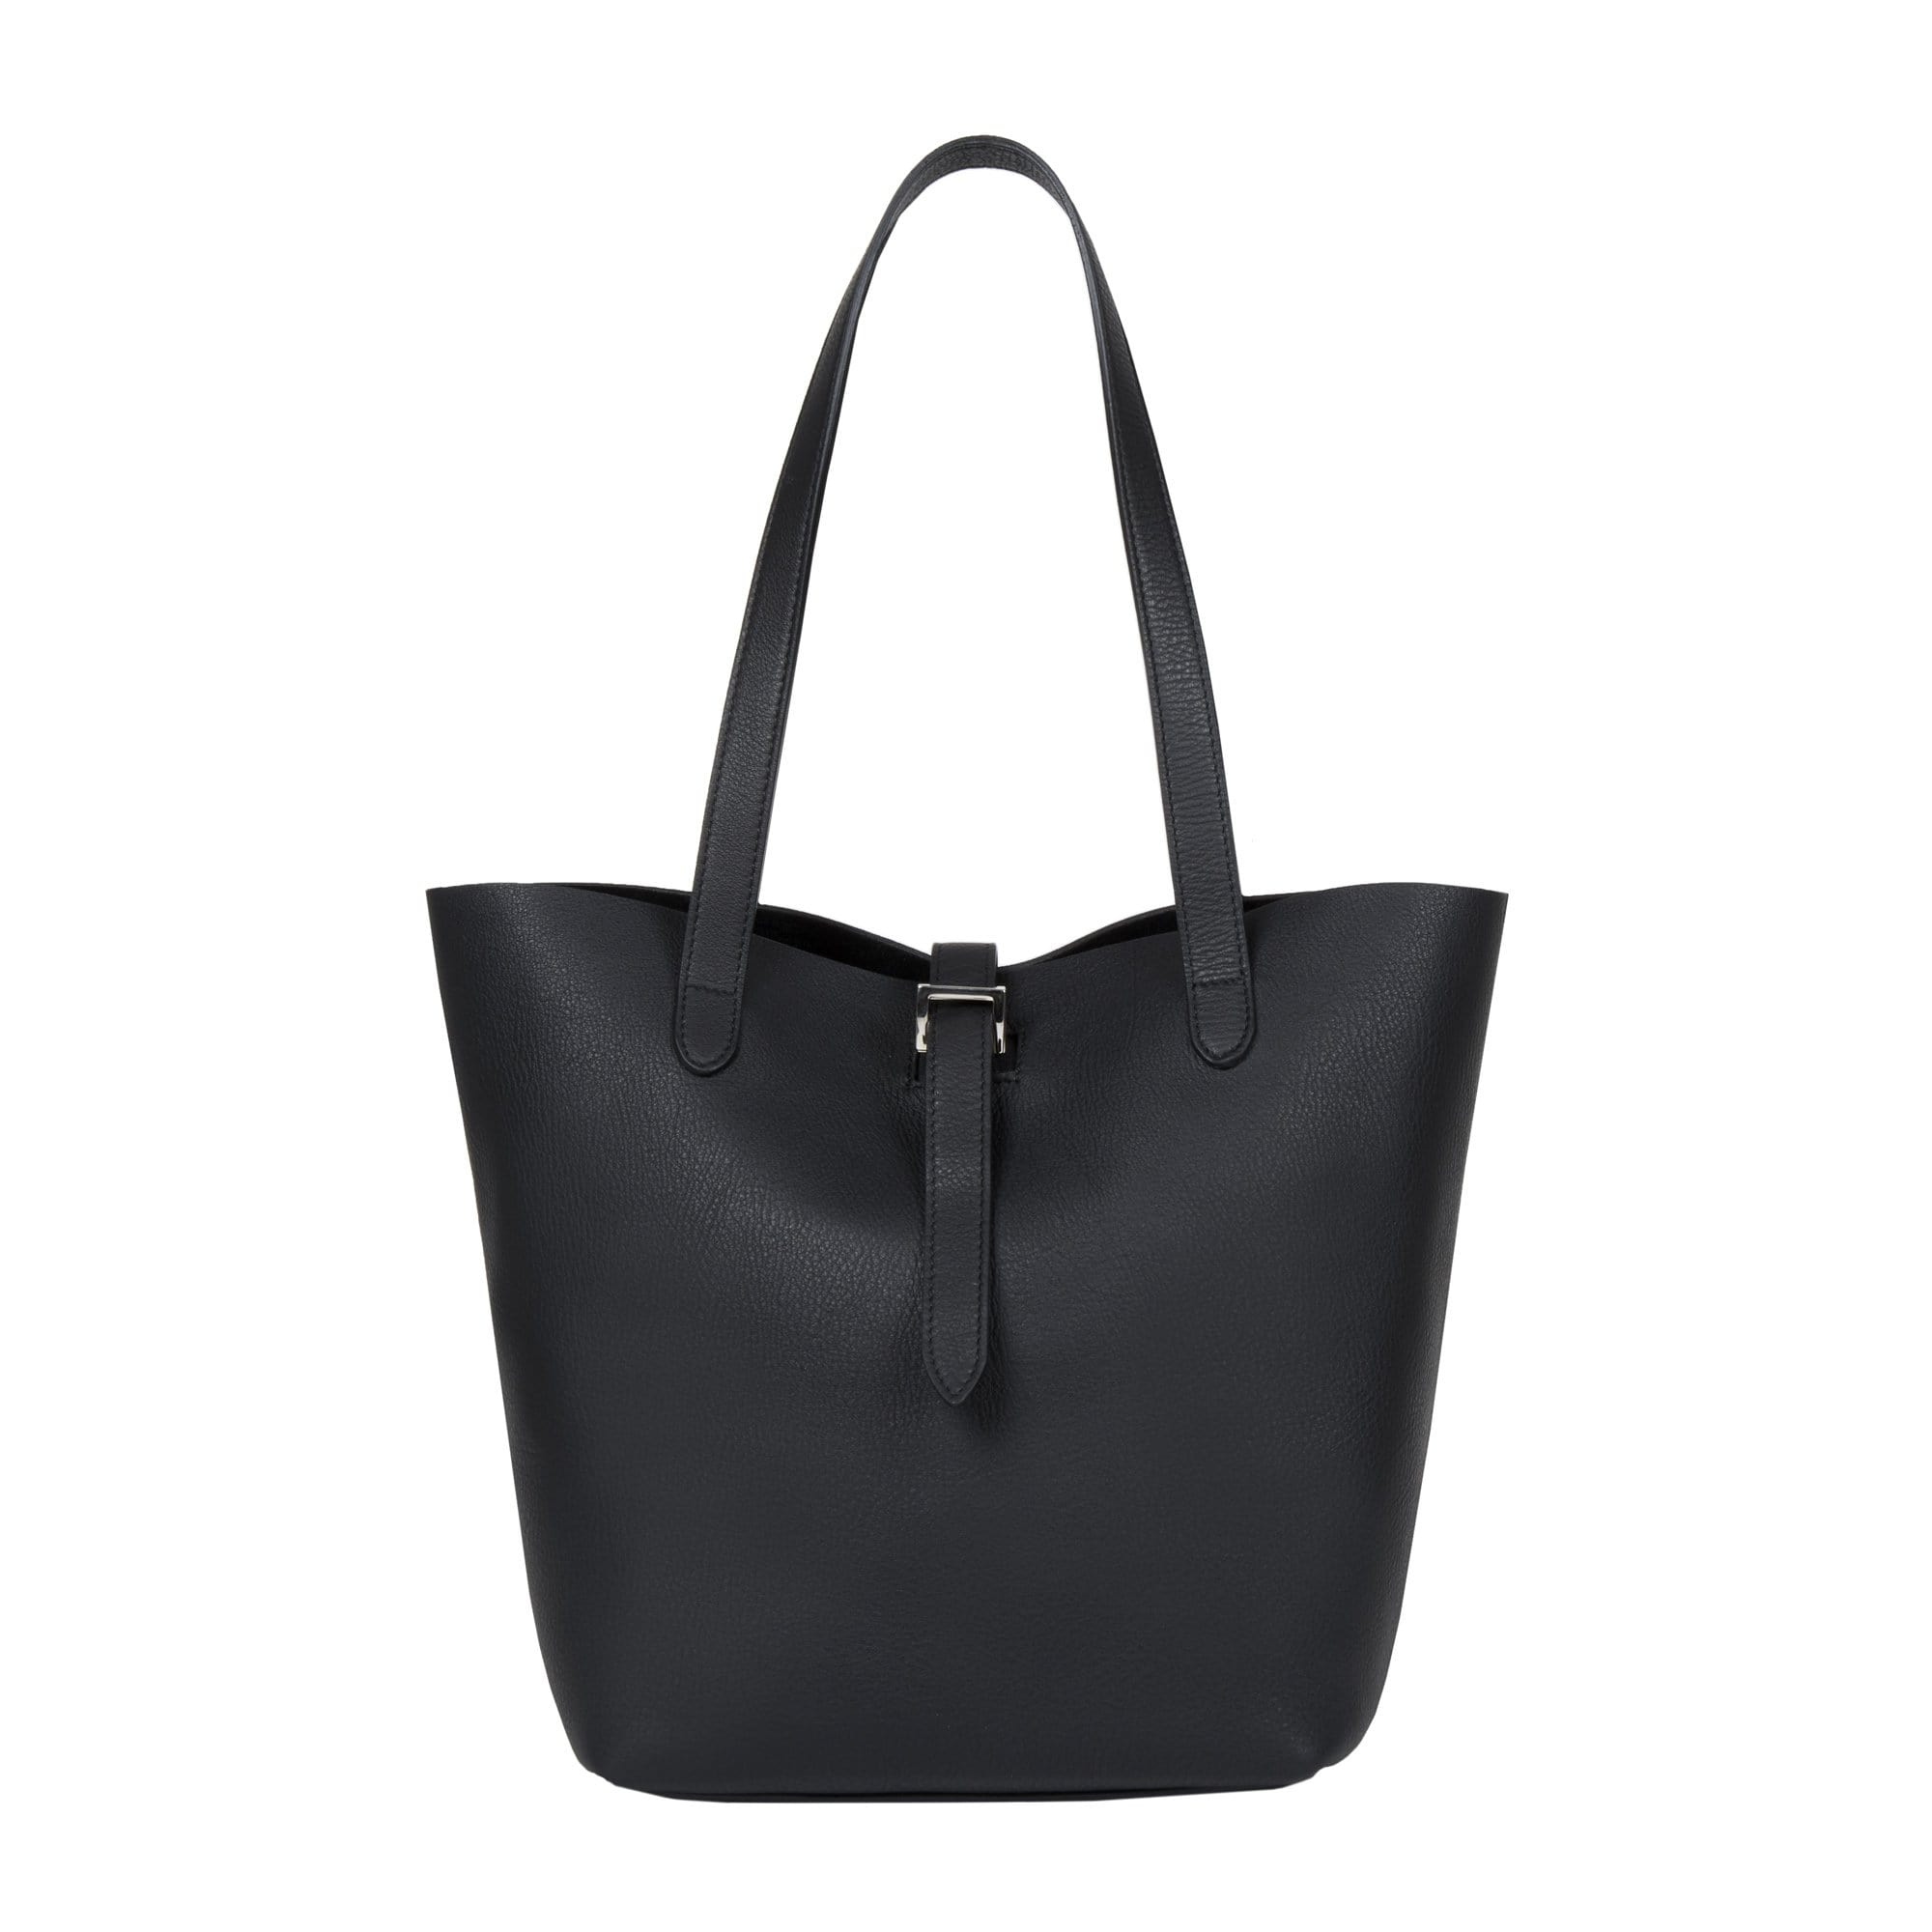 Thela Shopper | Black - meli melo Official